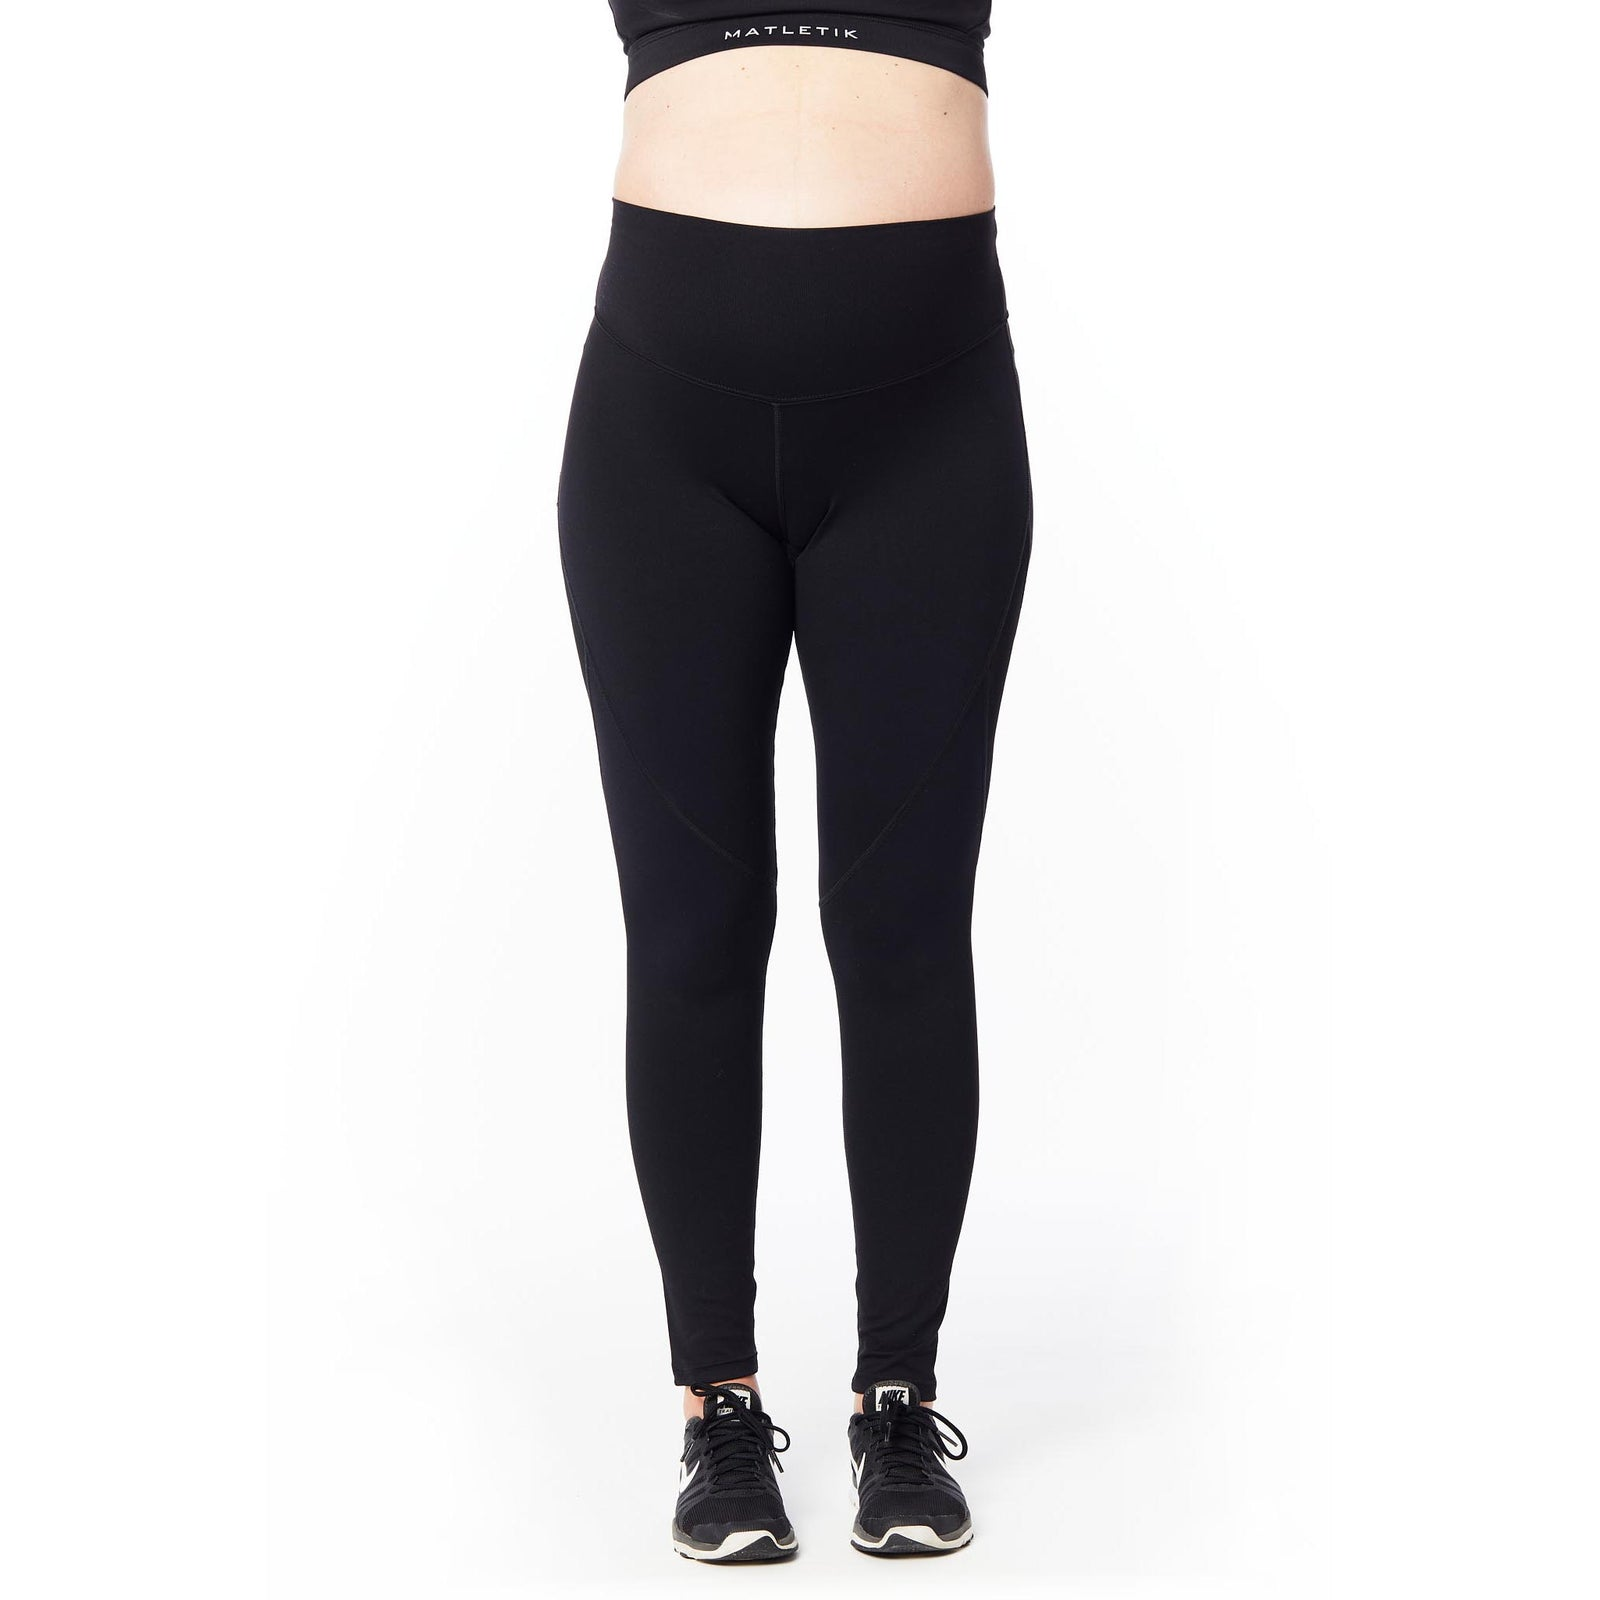 BRAVE Full length legging with mid waist panel